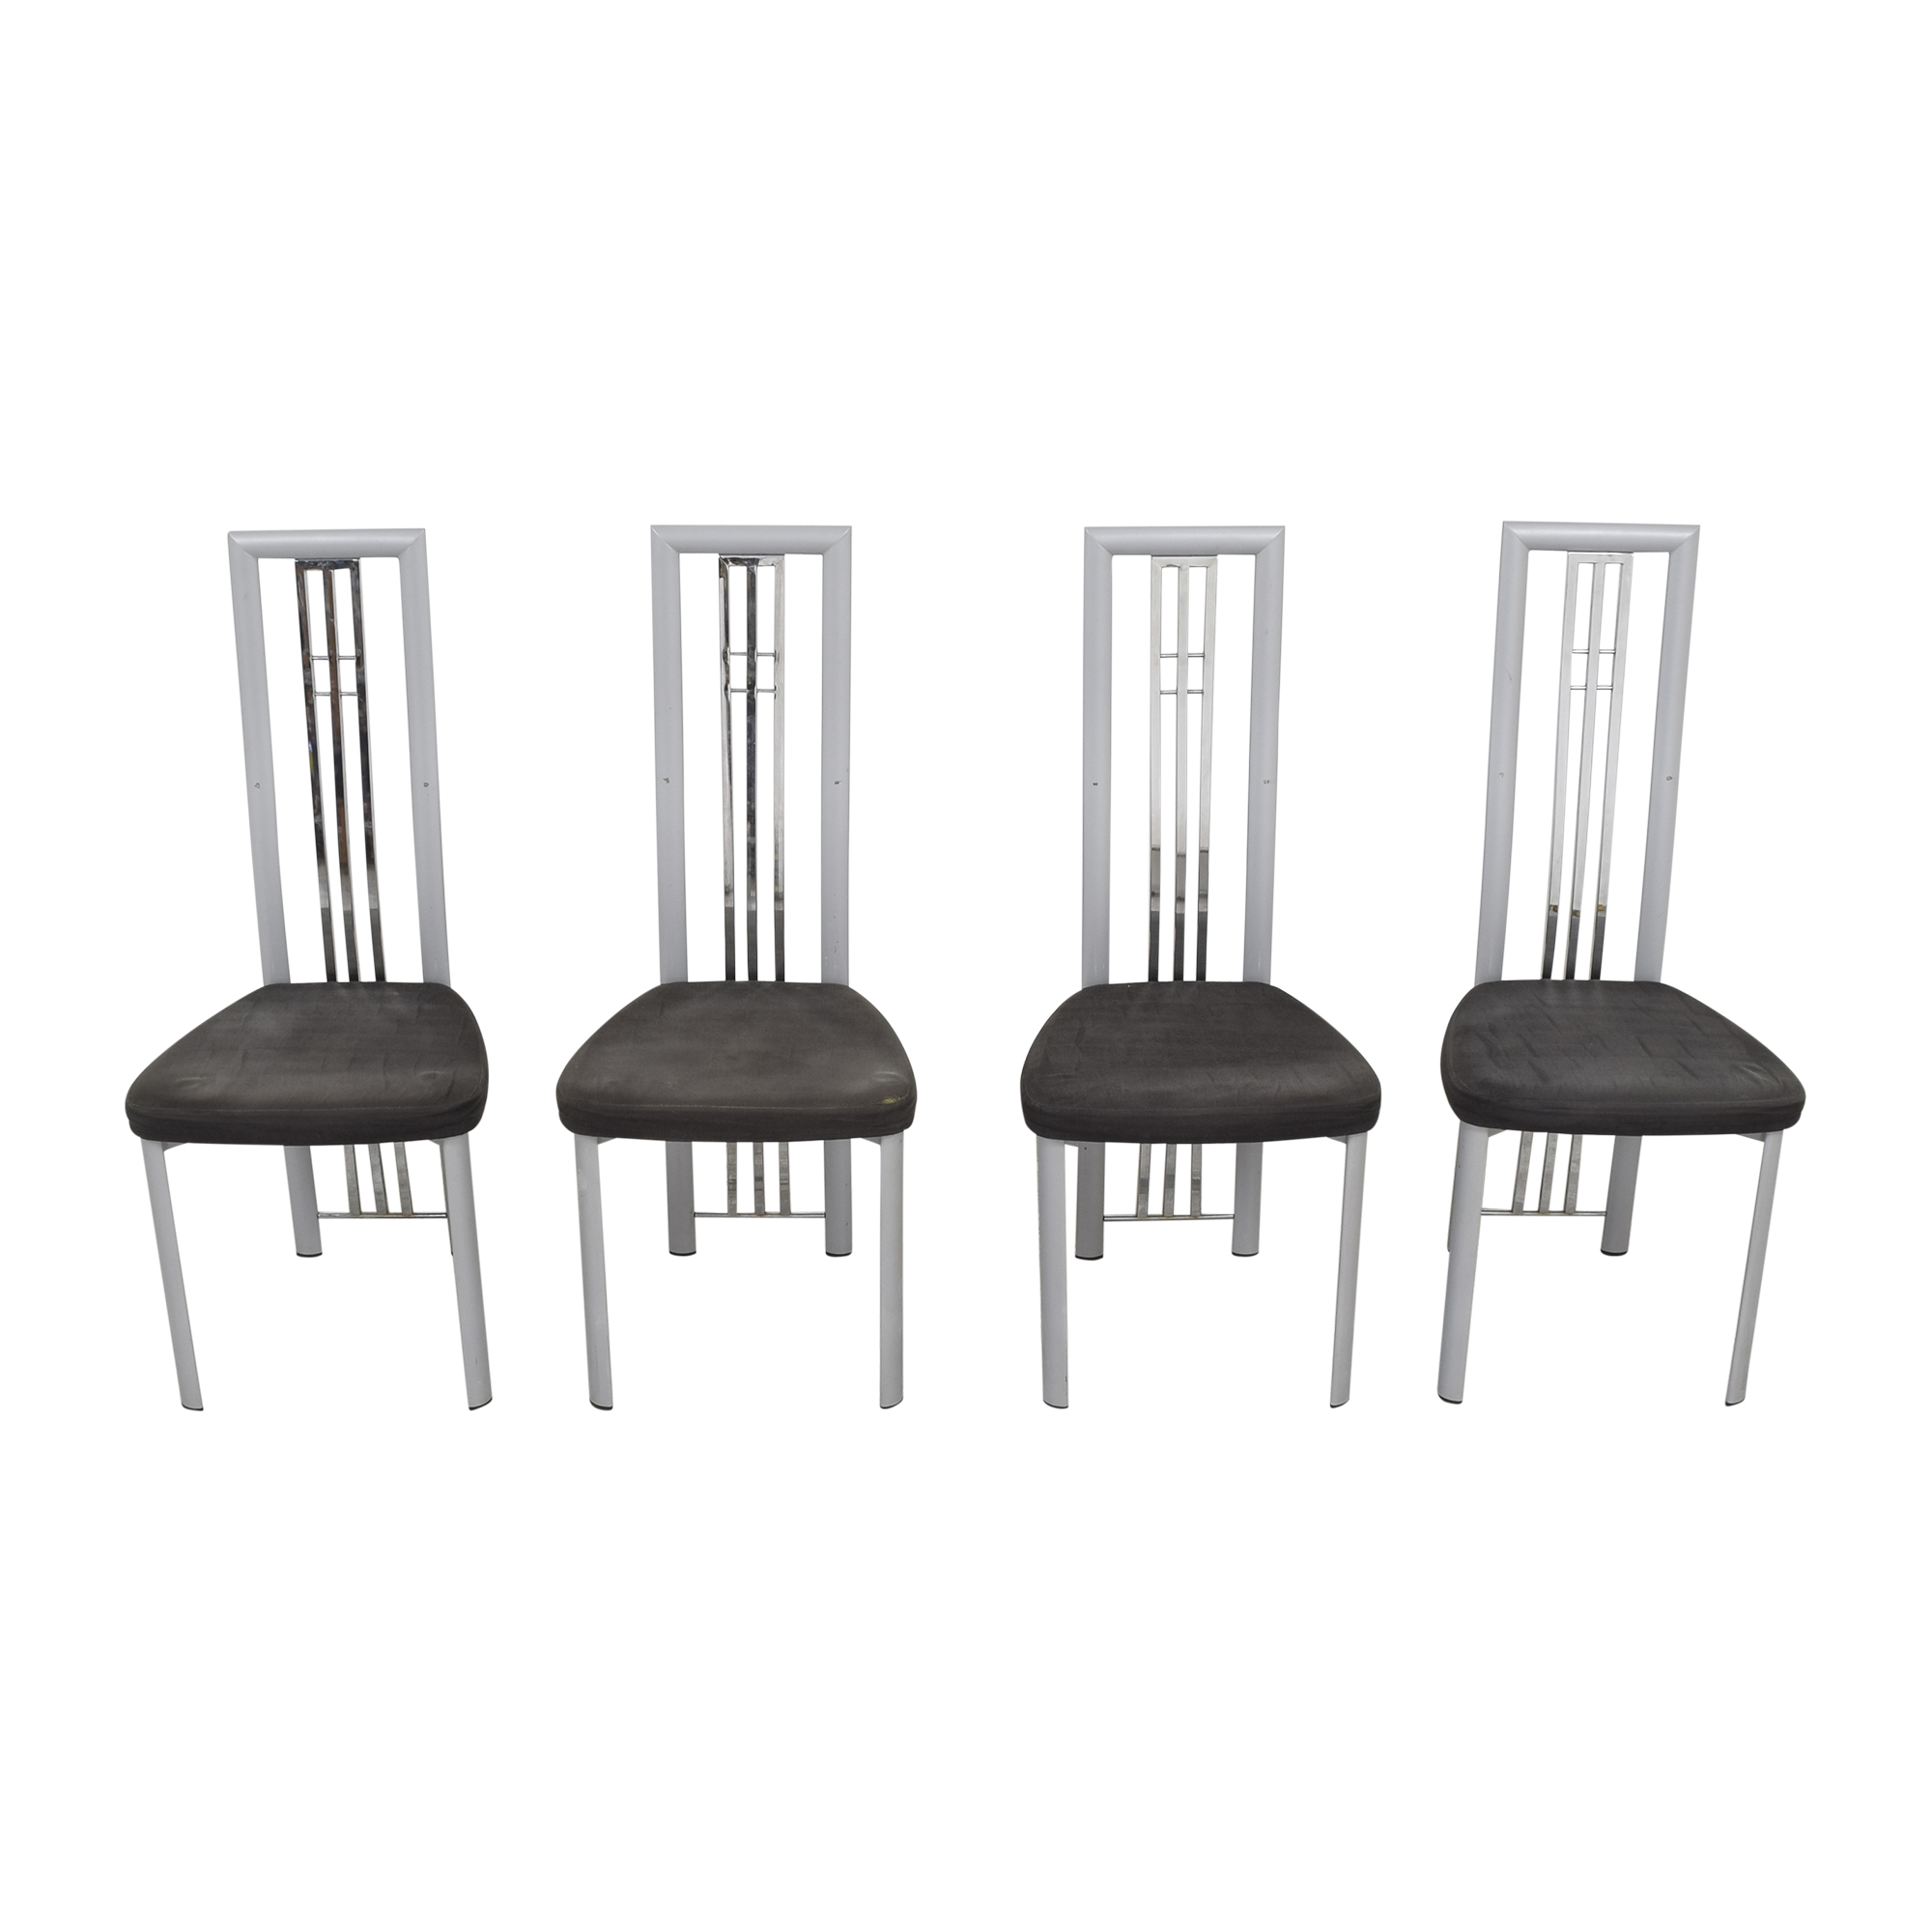 Effezeta Effezeta High Back Dining Chairs nyc